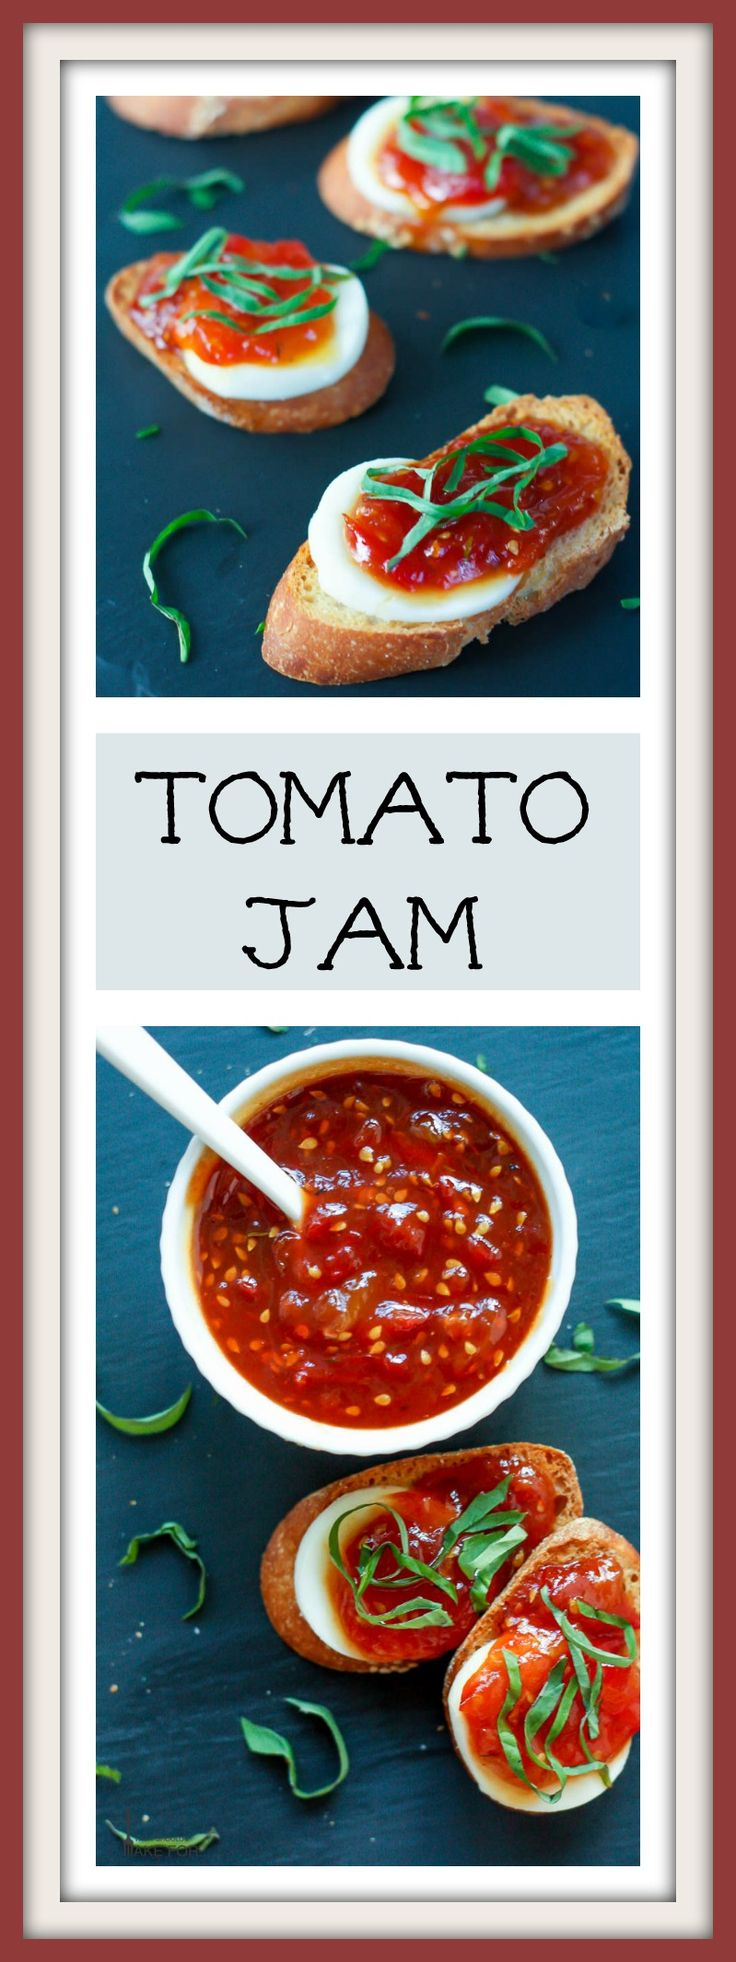 THIS TOMATO JAM IS LITTLE SWEET, A LITTLE SPICY AND TERRIFIC SERVED WITH CHEESE OR SPREAD ON A PIECE OF TOAST.